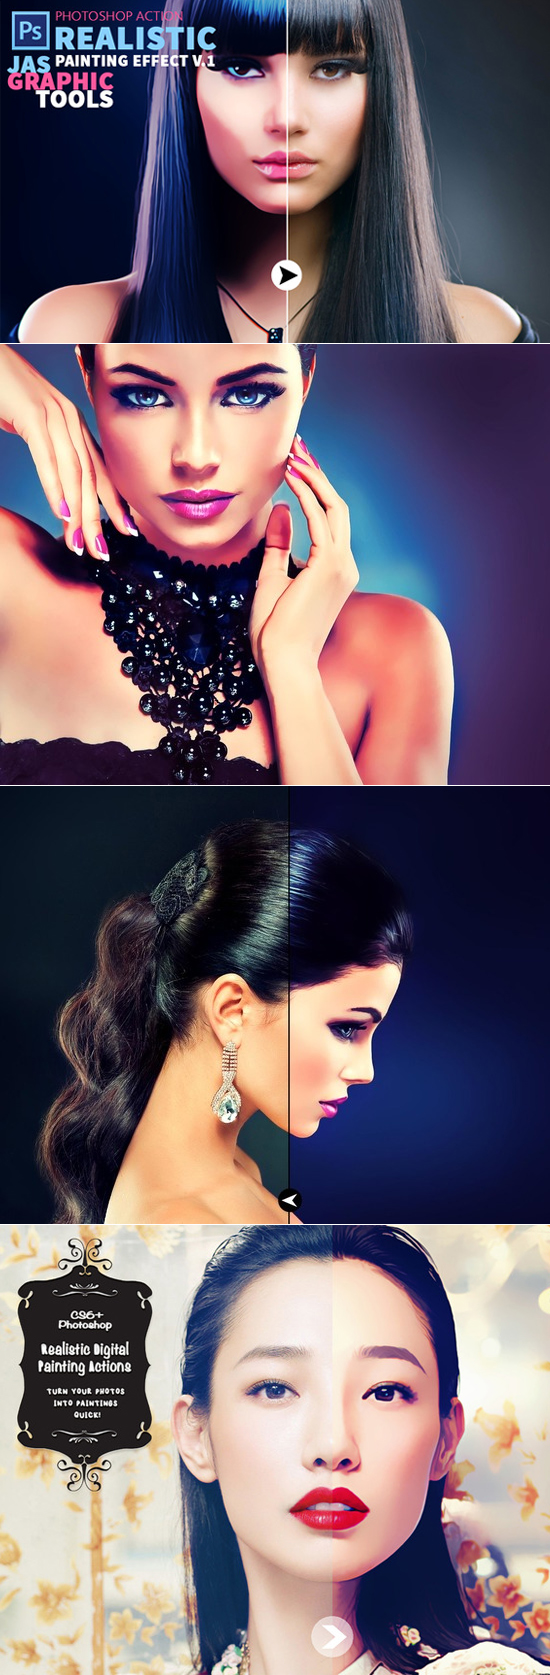 Realistic Painting Effect Photoshop Actions